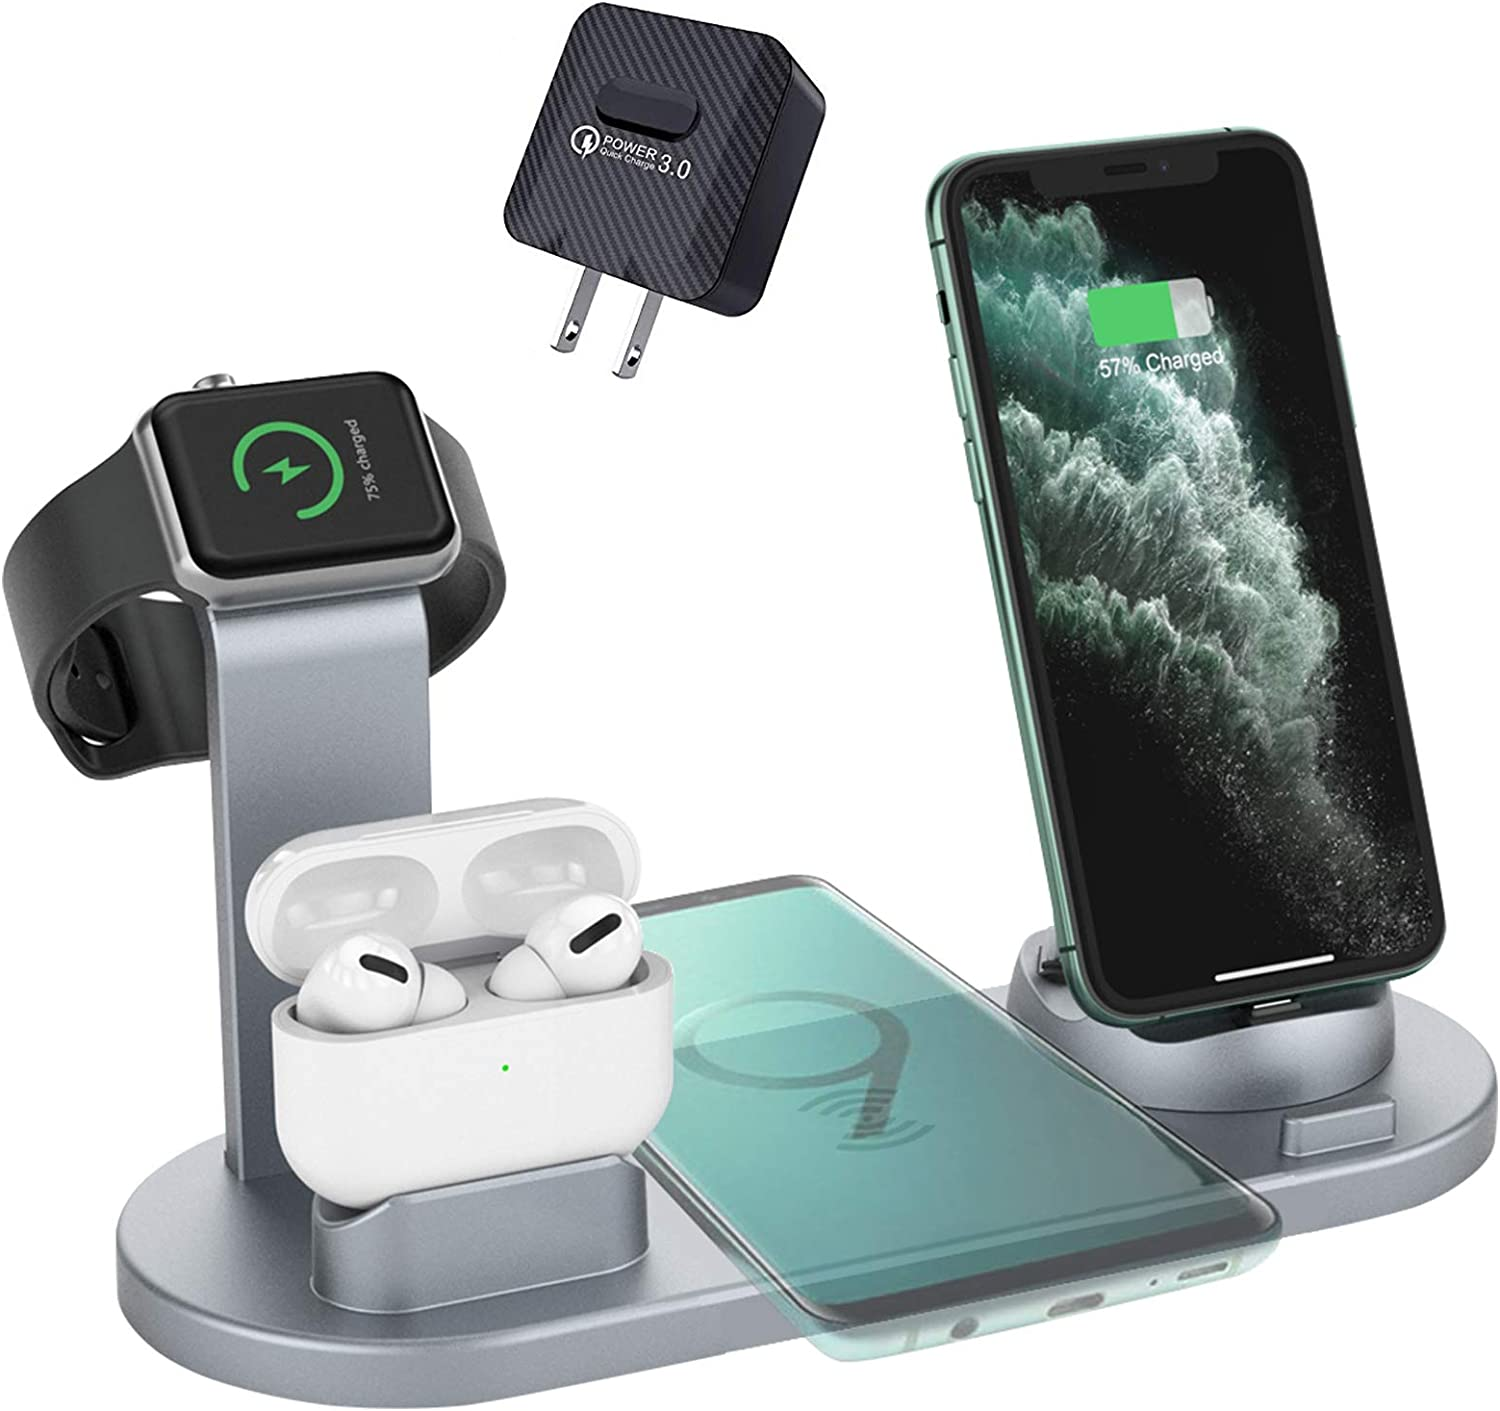 ZHOUBIN Wireless Charger Station, 4 in 1 Charger Dock Stand Compatible with iPhone/AirPods/Apple Watch, Fast Wireless Charging Pad Compatible with iPhone 11, Pro, Max/X/XS/XR/8/8 Plus